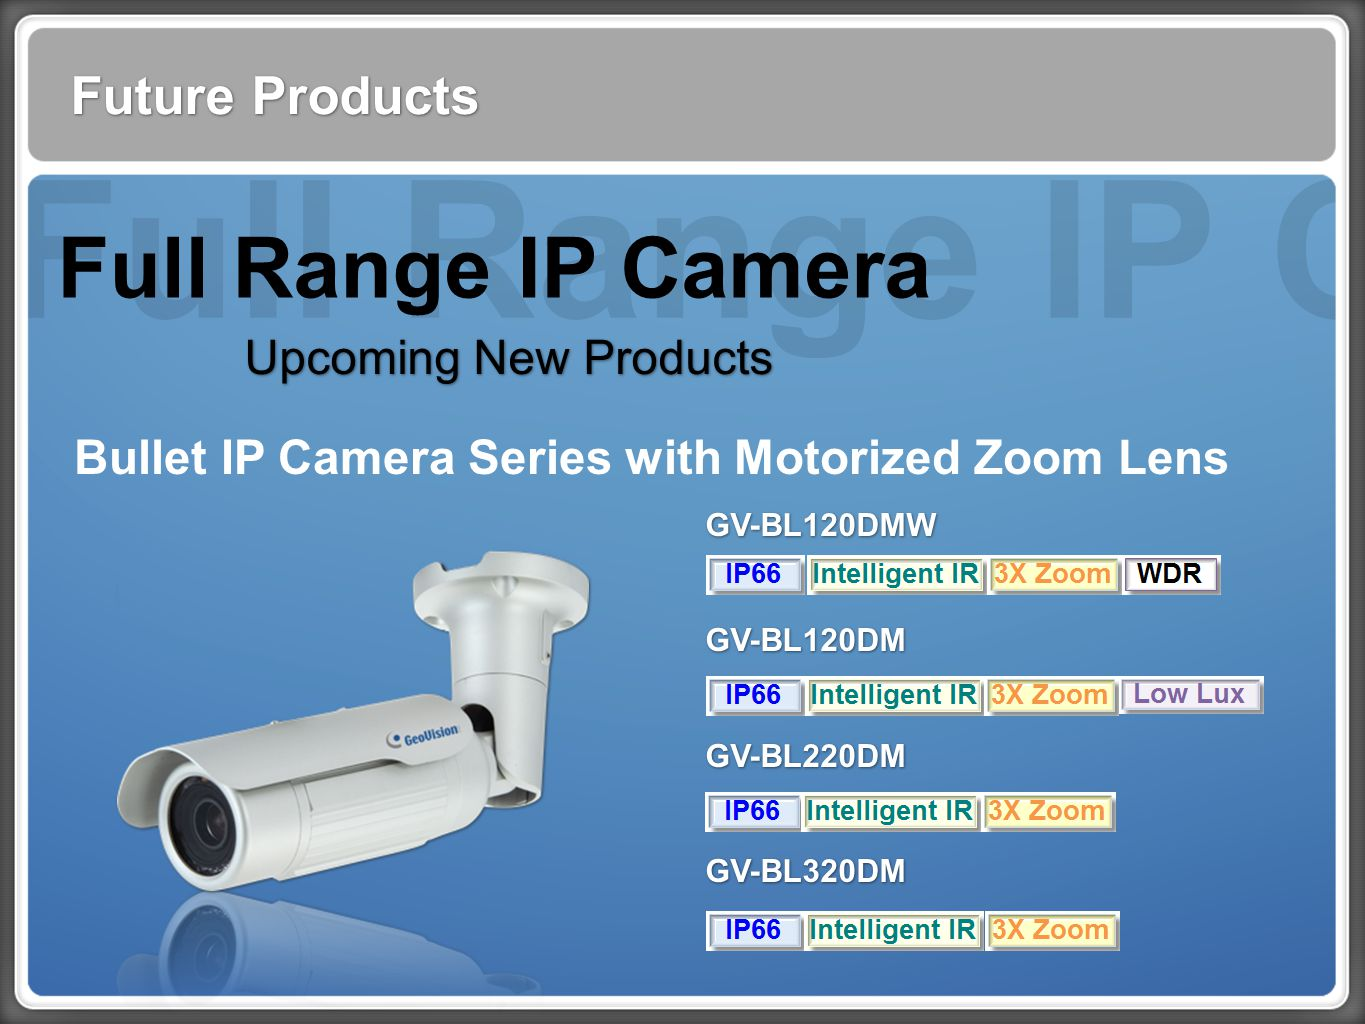 Full Range IP Cam Future Products Full Range IP Camera Upcoming New Products Bullet IP Camera Series with Motorized Zoom Lens GV-BL120DMW GV-BL120DM GV-BL220DM GV-BL320DM GV-BL120DMW GV-BL120DM GV-BL220DM GV-BL320DM